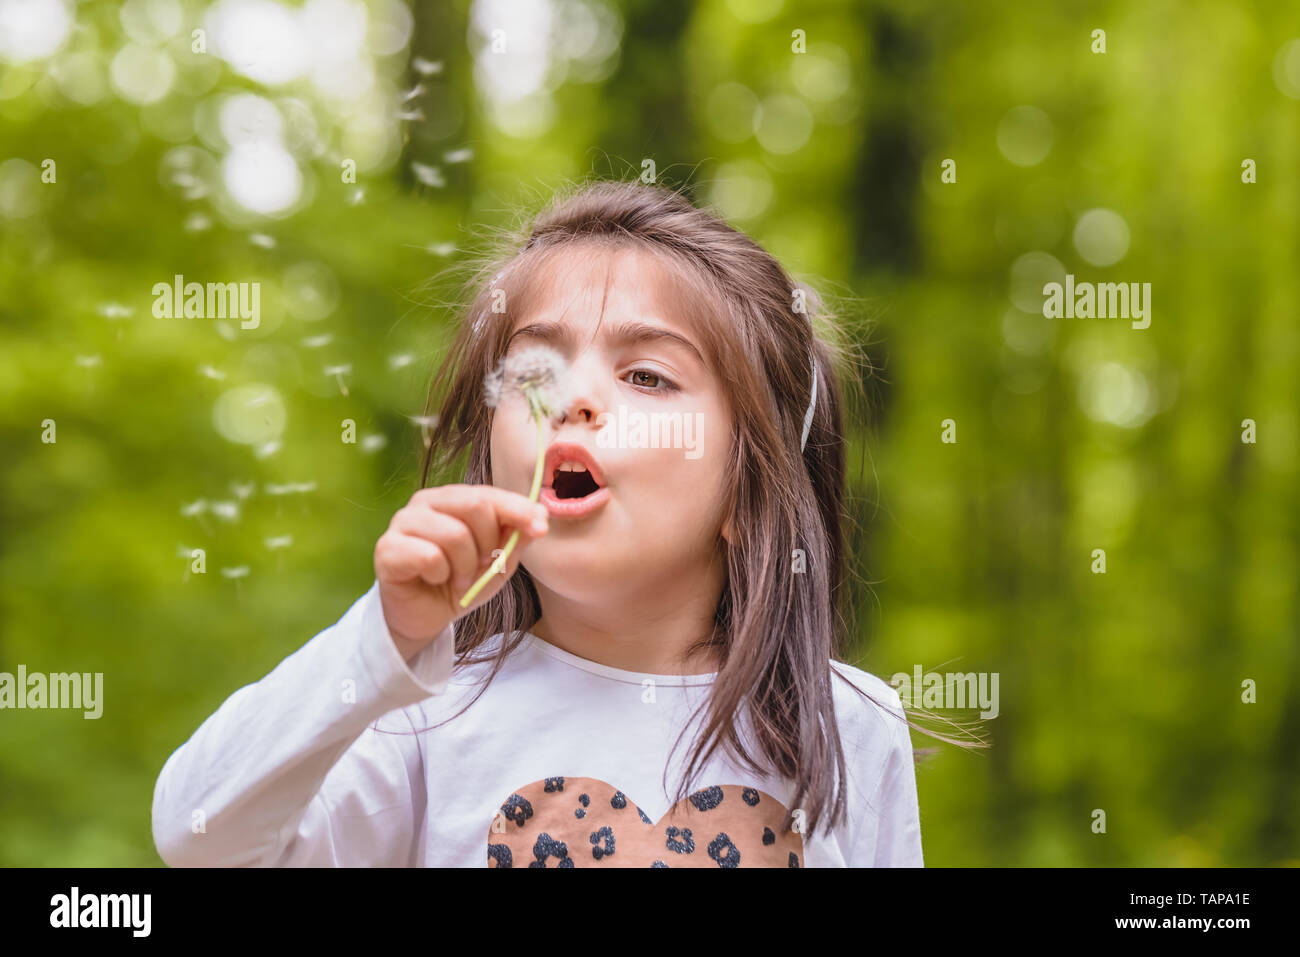 Outdoor portrait of  adorable four years old cute little girl blowing a dandelion wild flower at meadow in a sunny day Stock Photo